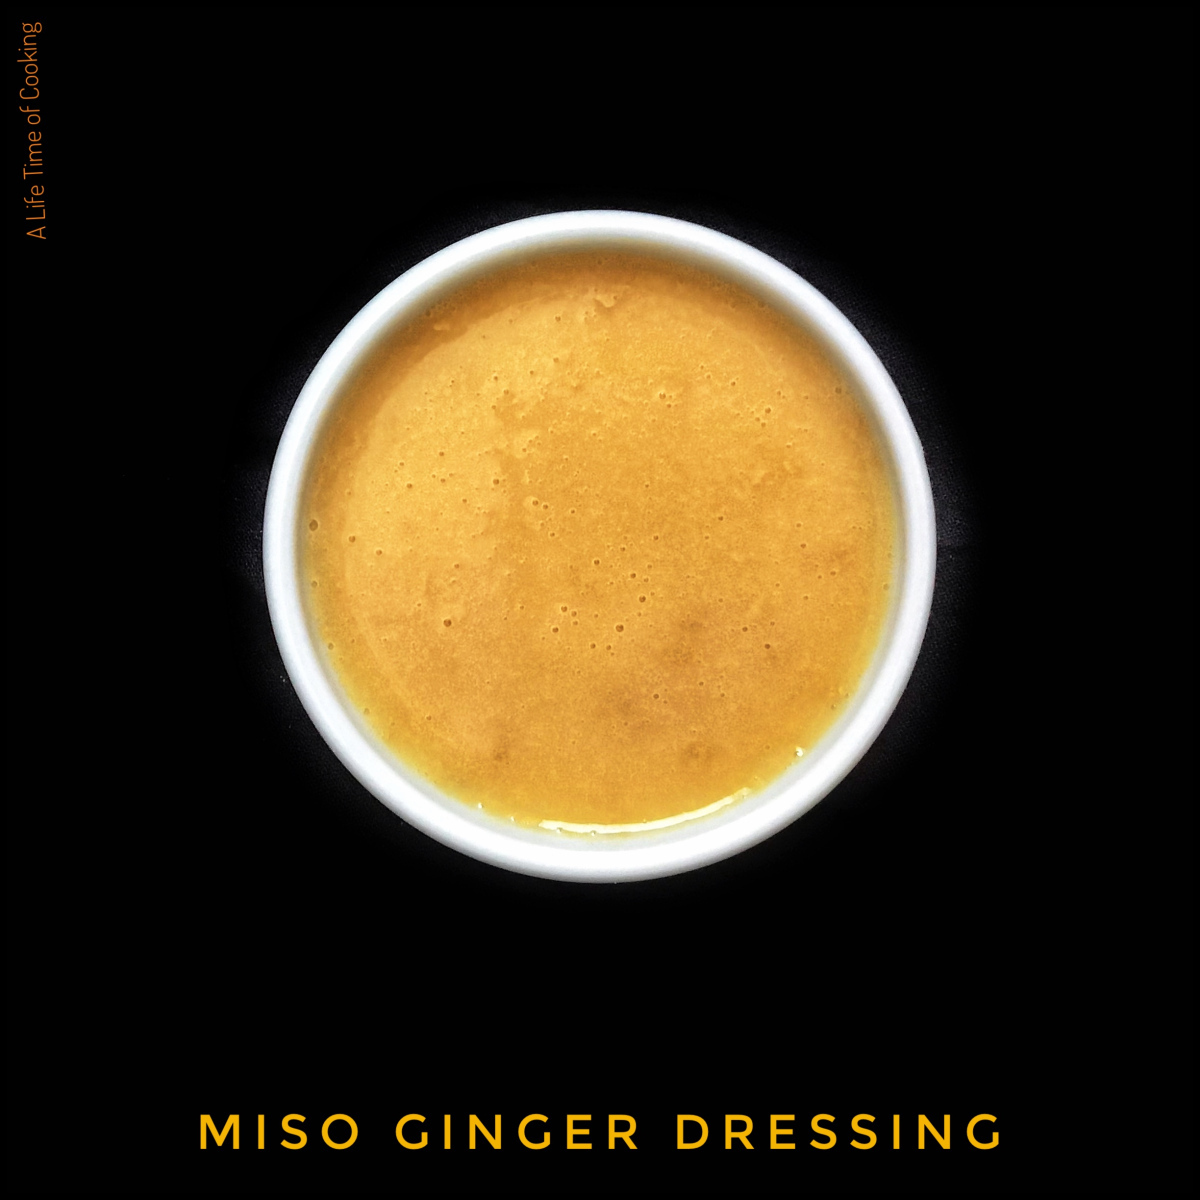 Miso and Ginger Dressing